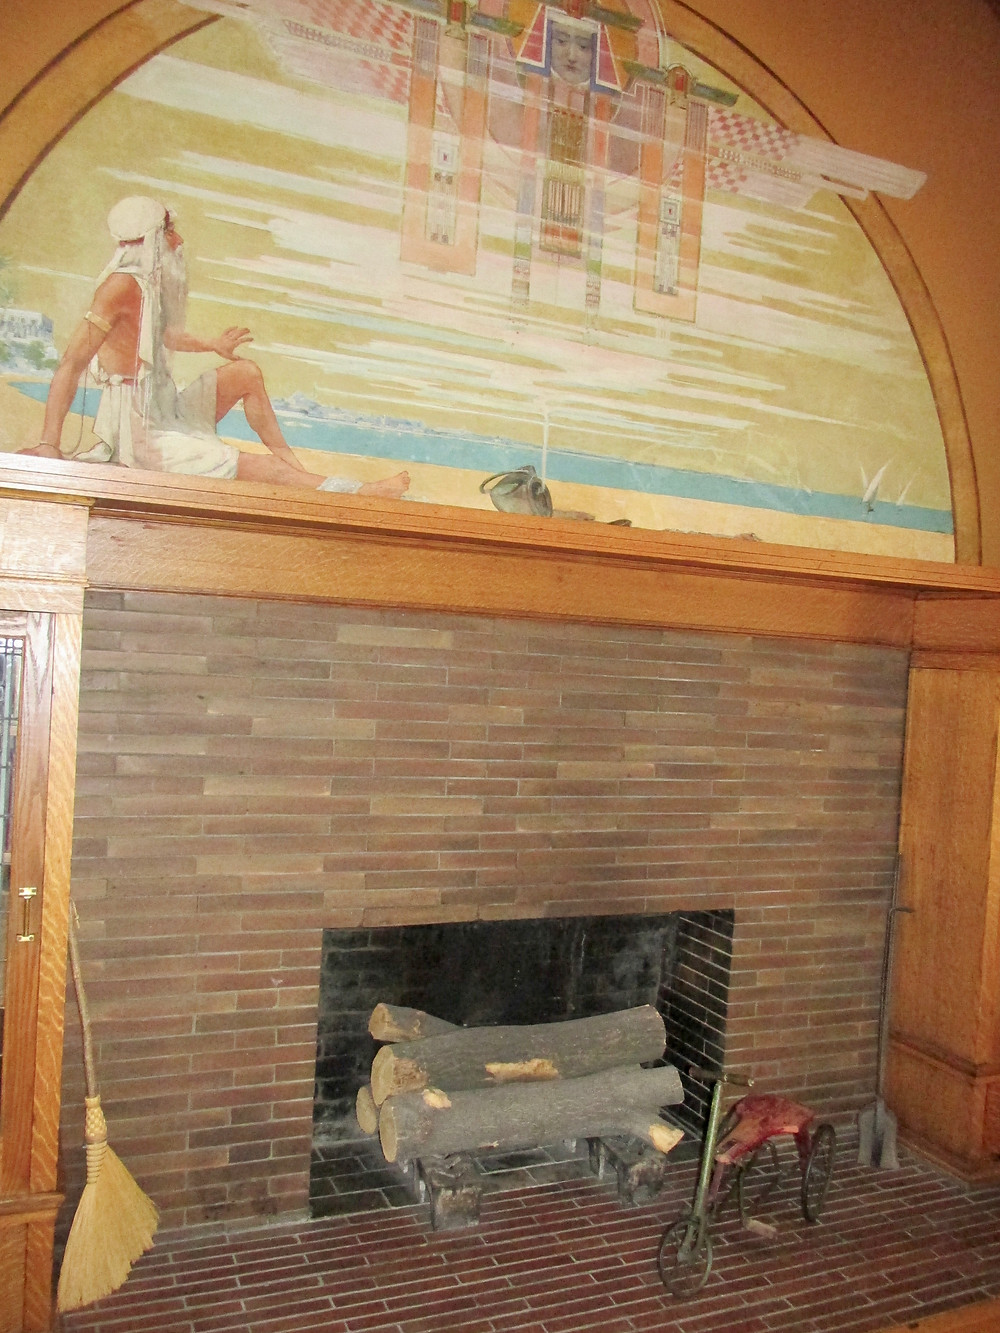 The playroom fireplace